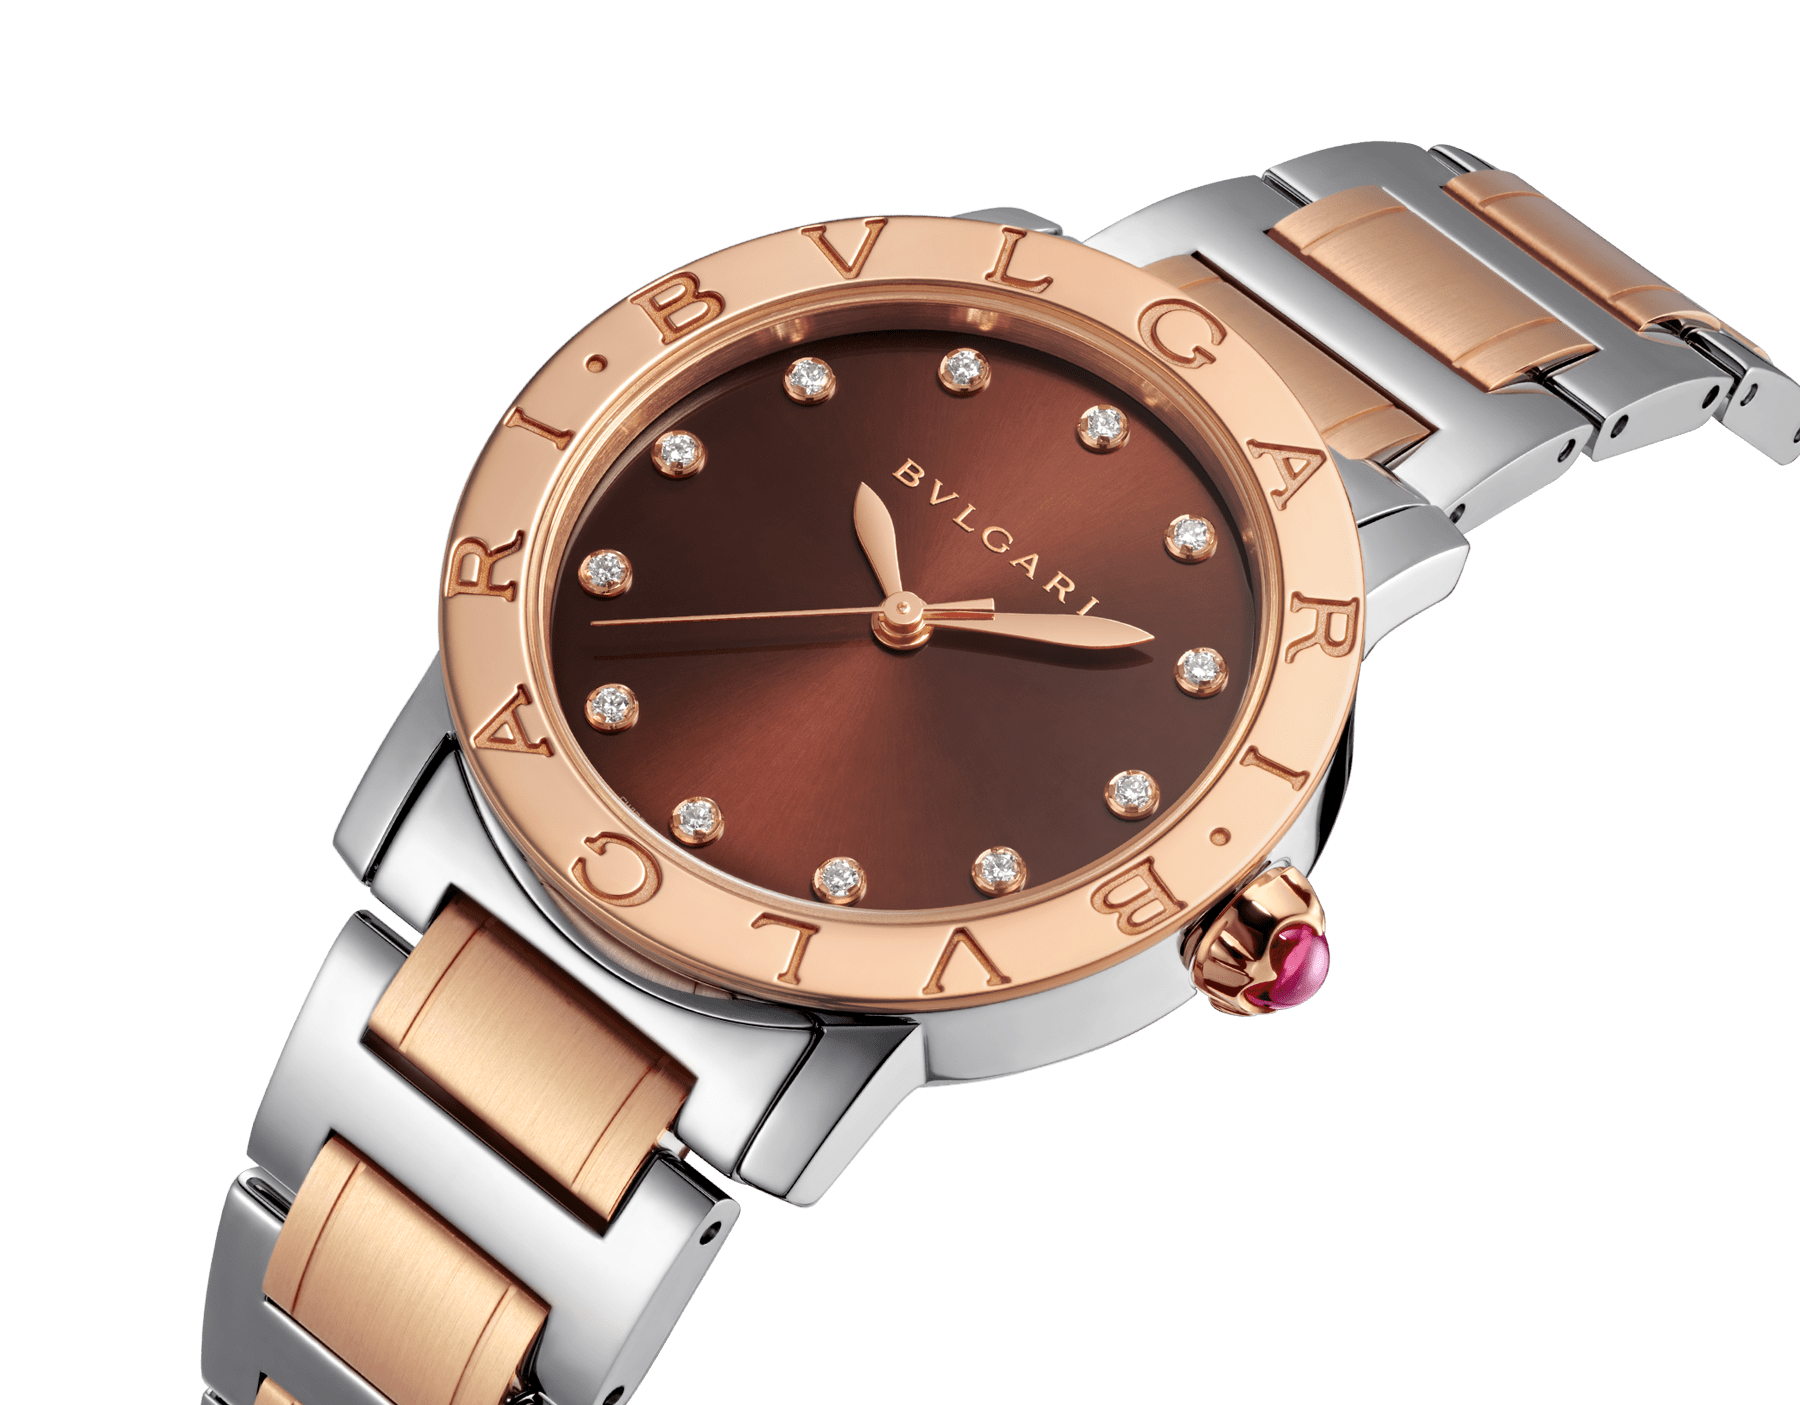 BVLGARI BVLGARI watch in stainless steel and 18 kt rose gold case and bracelet, with brown soleil lacquered dial and diamond indexes. Medium model 102157 image 2